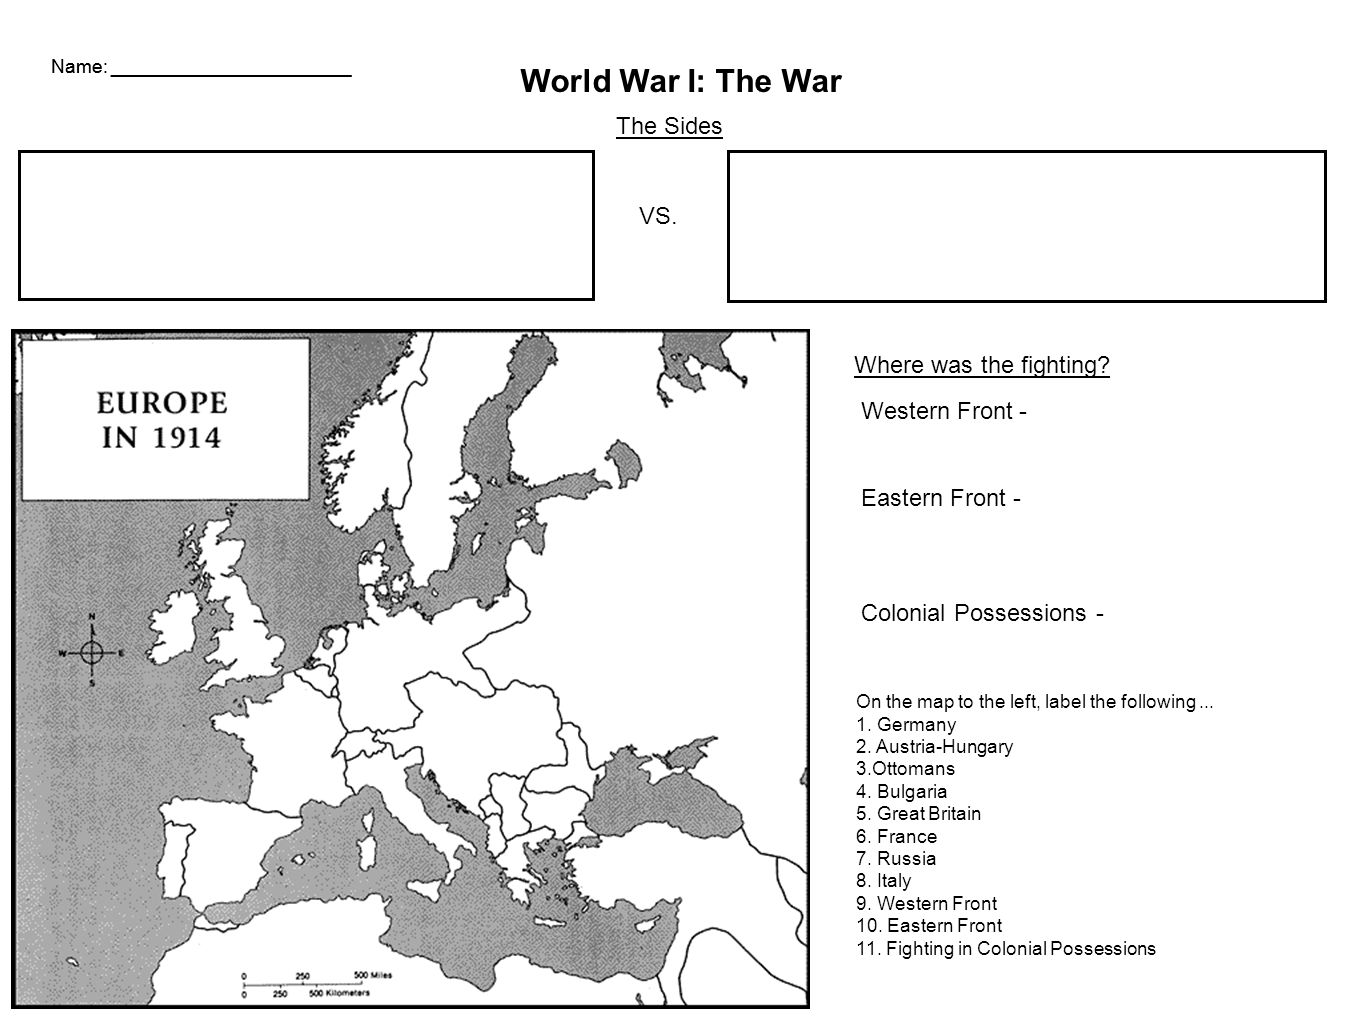 Name World War I Political Cartoons Use Your Knowledge Of WWI To - Germany map cartoon